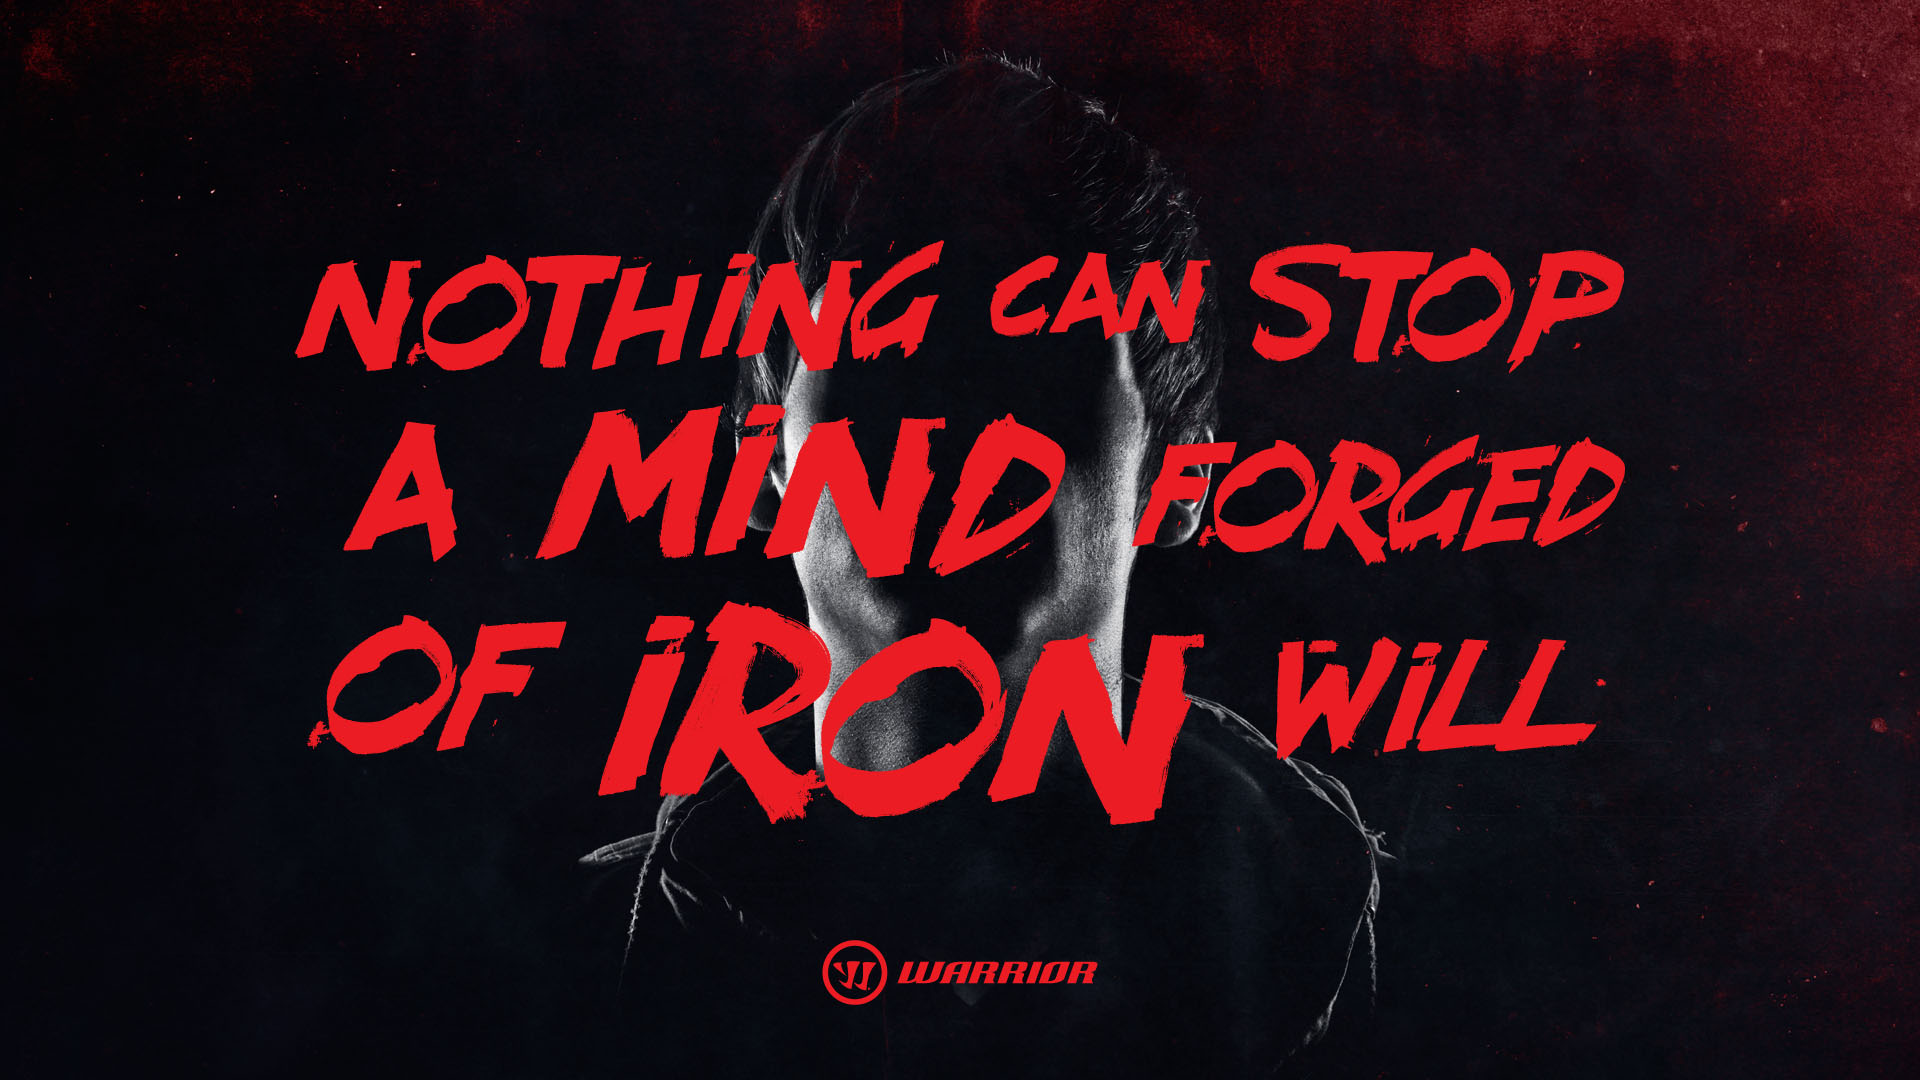 warrior_nothingcanstopamind_1920x1080